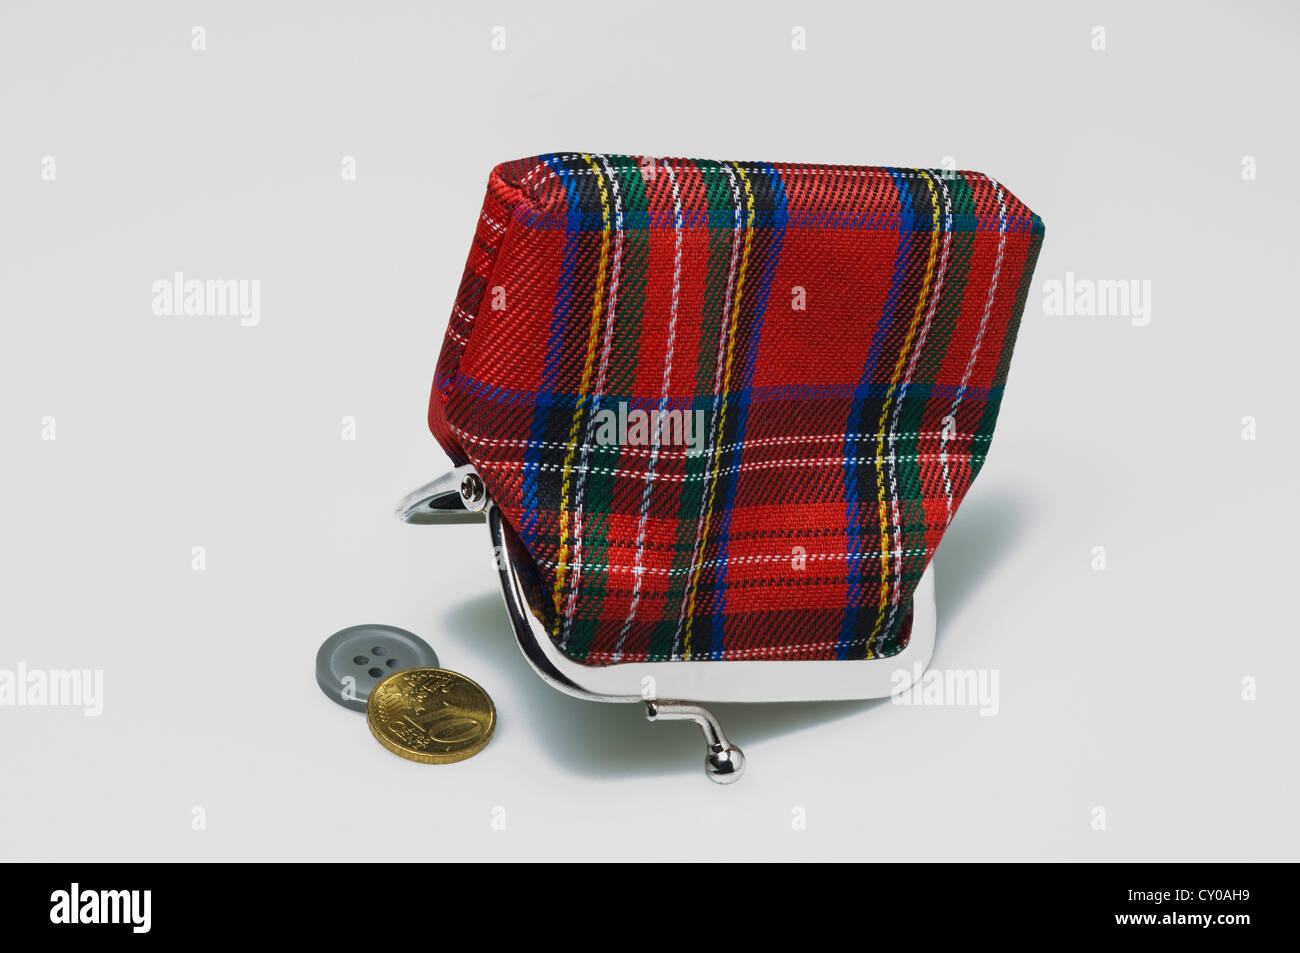 Upside down Scotsmans purse with a 10 cent coin and a button, symbolic image for frugal budgeting, being tight with - Stock Image